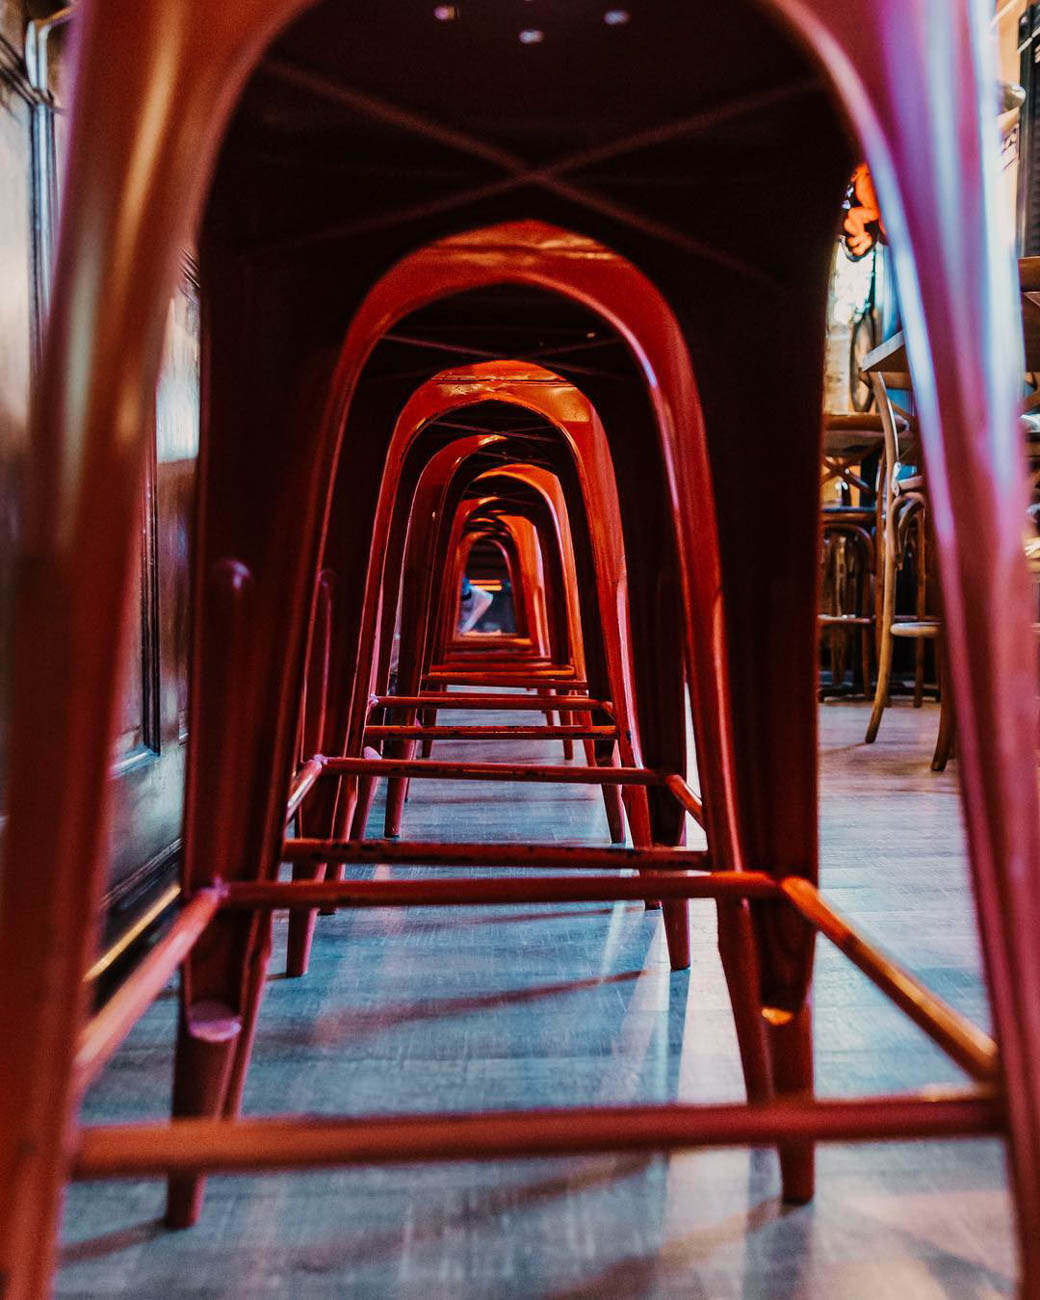 No, you're not looking through an artistically engineered tunnel. Those are the red stools from Ché Cincinnati. A different angle of perspective can make the simplest things look grandiose. / Image courtesy of Instagram user @thecincinnatist // Published: 3.20.19